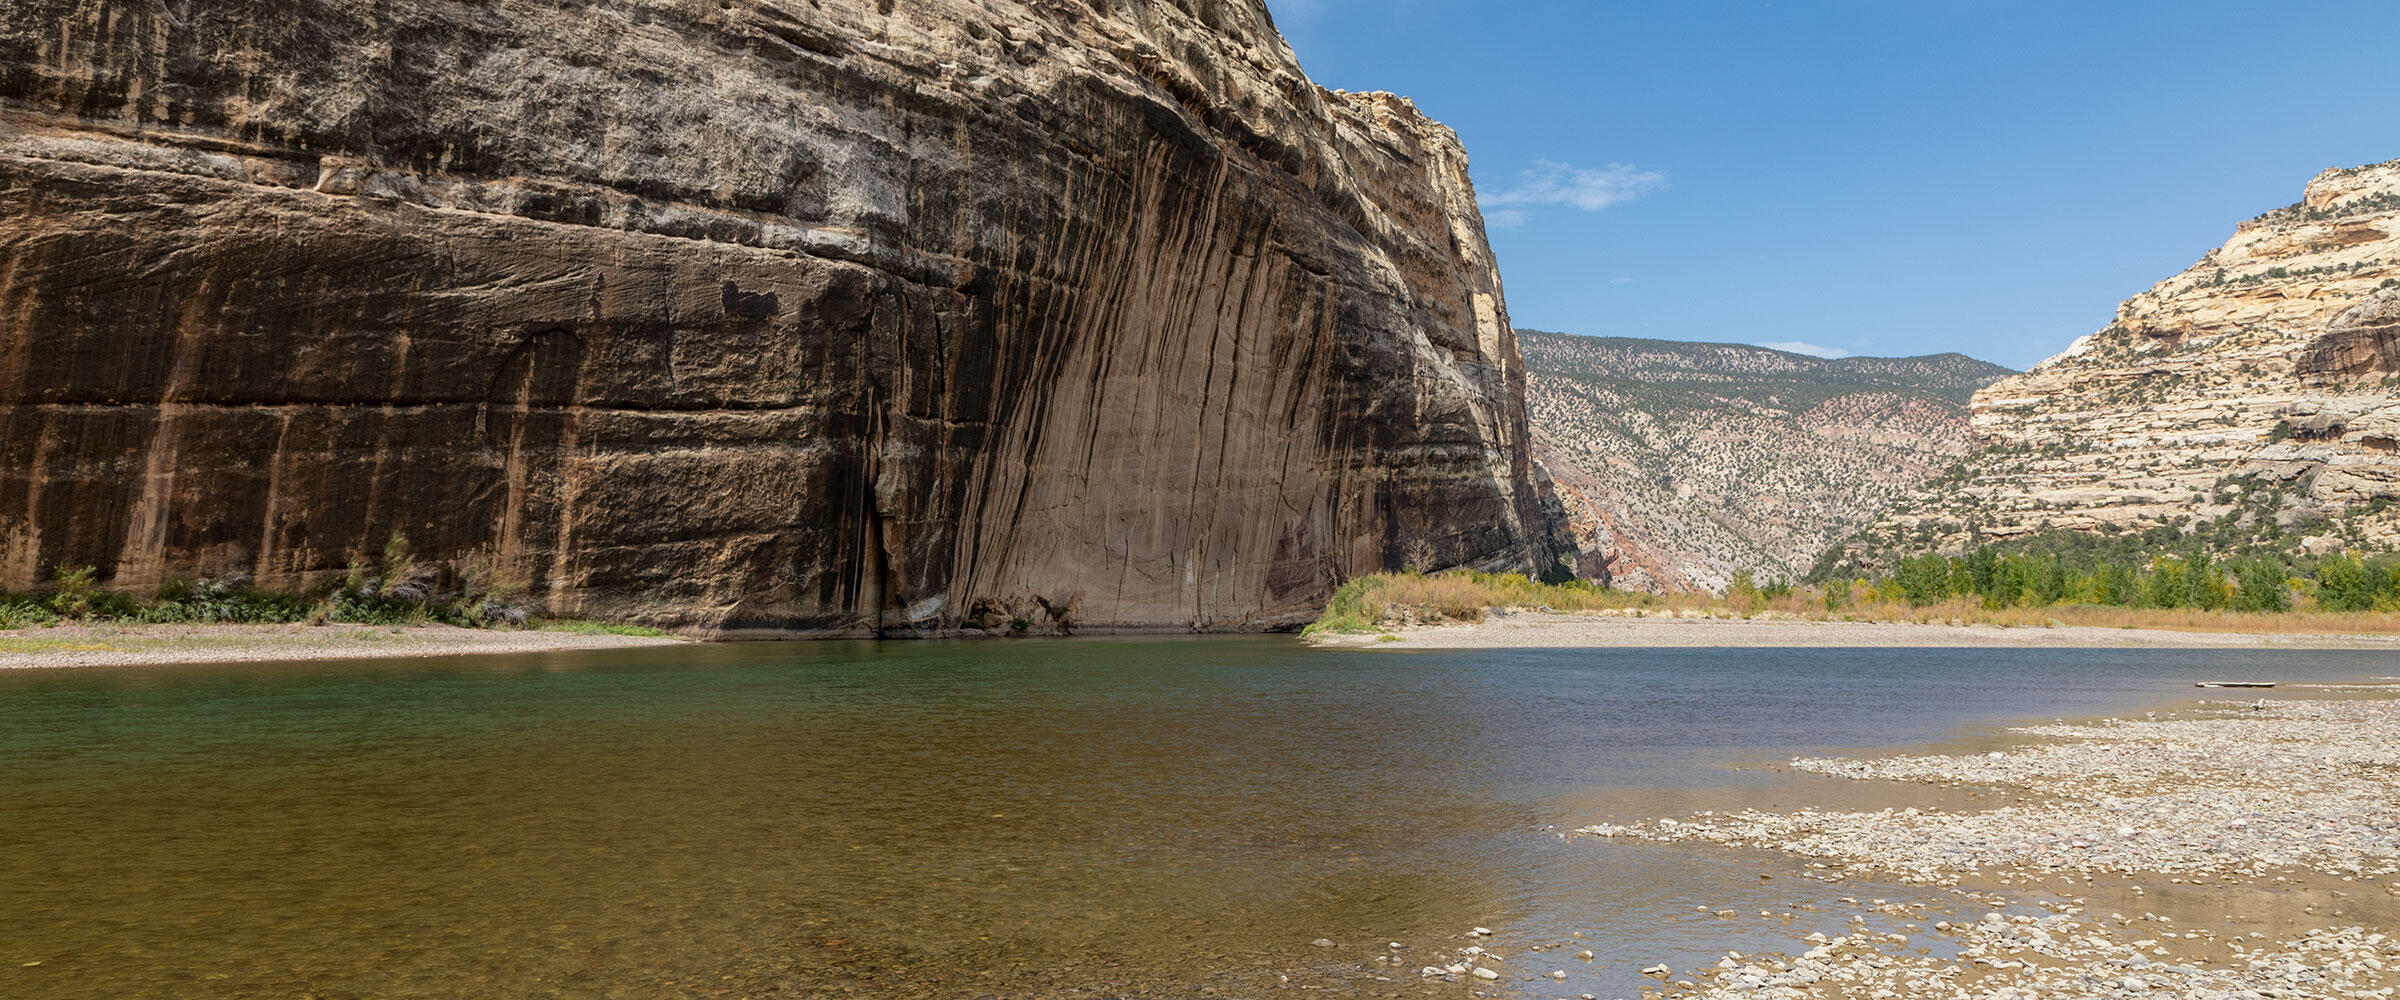 The Green River by a steep cliff.